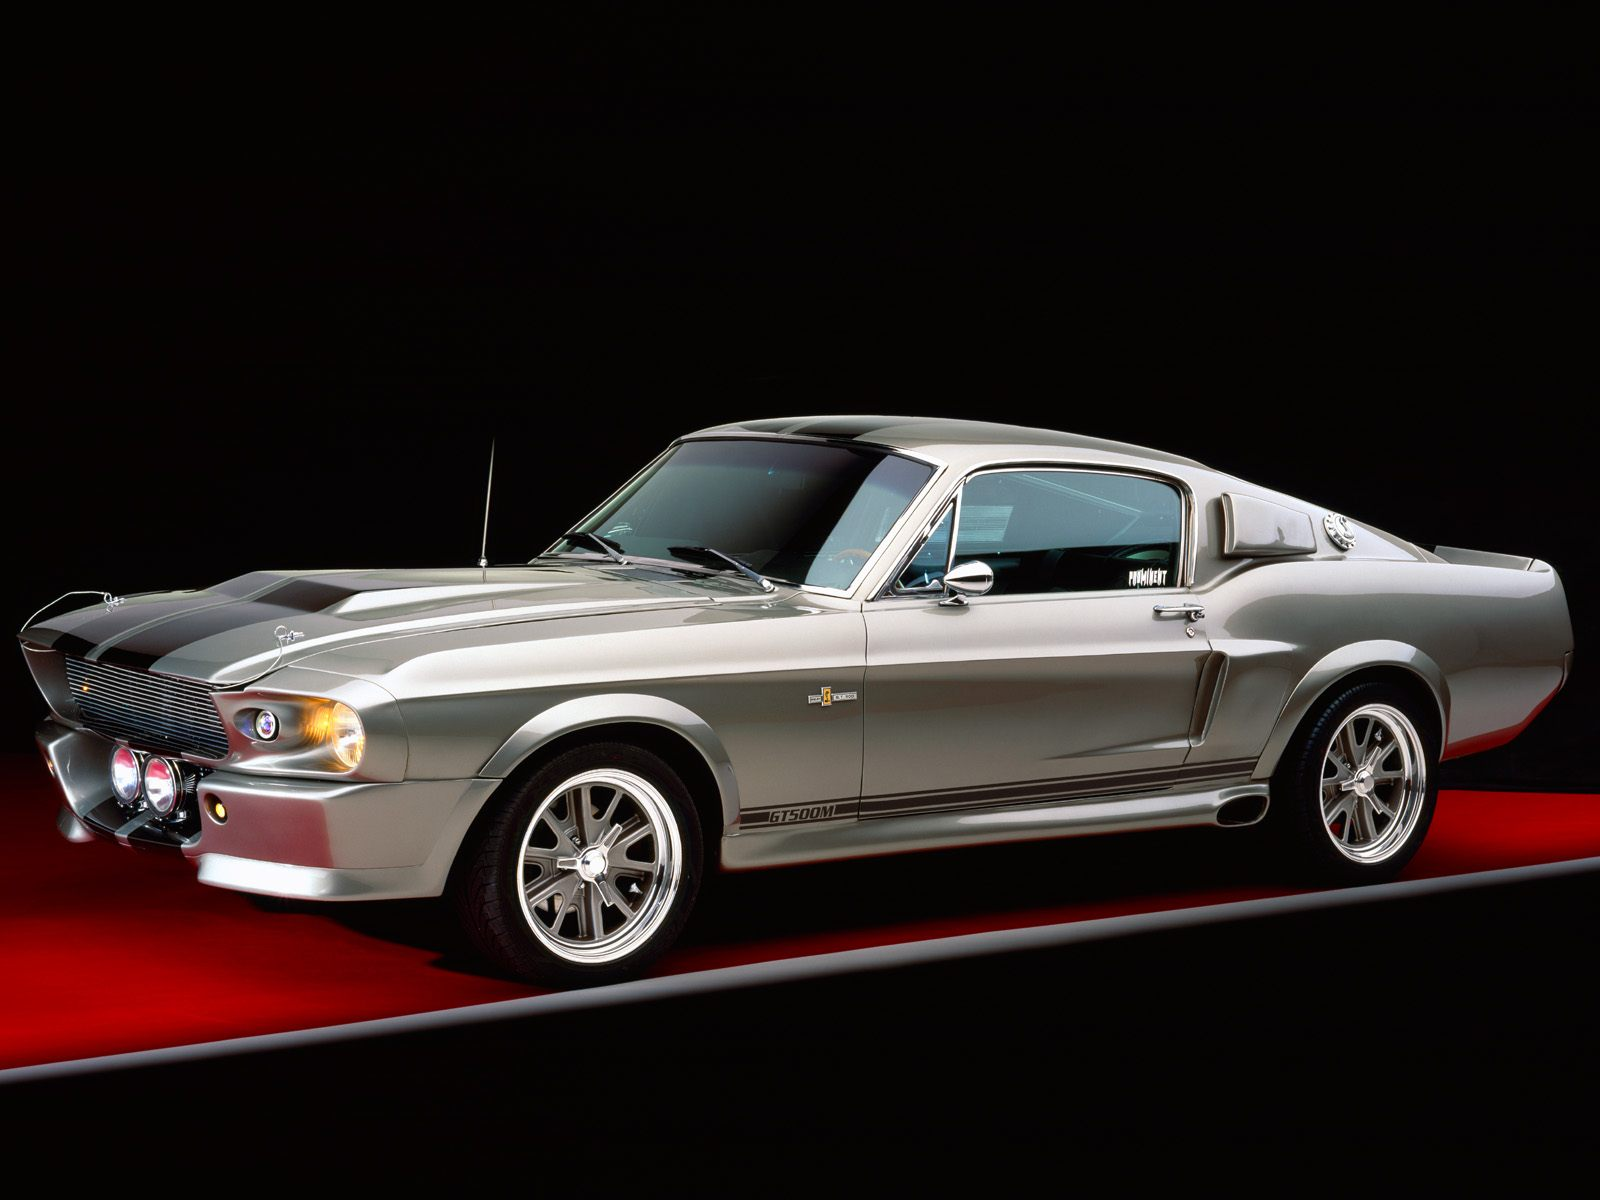 Desktop wallpaper downloads Ford Mustang car   Huge collection of 1600x1200